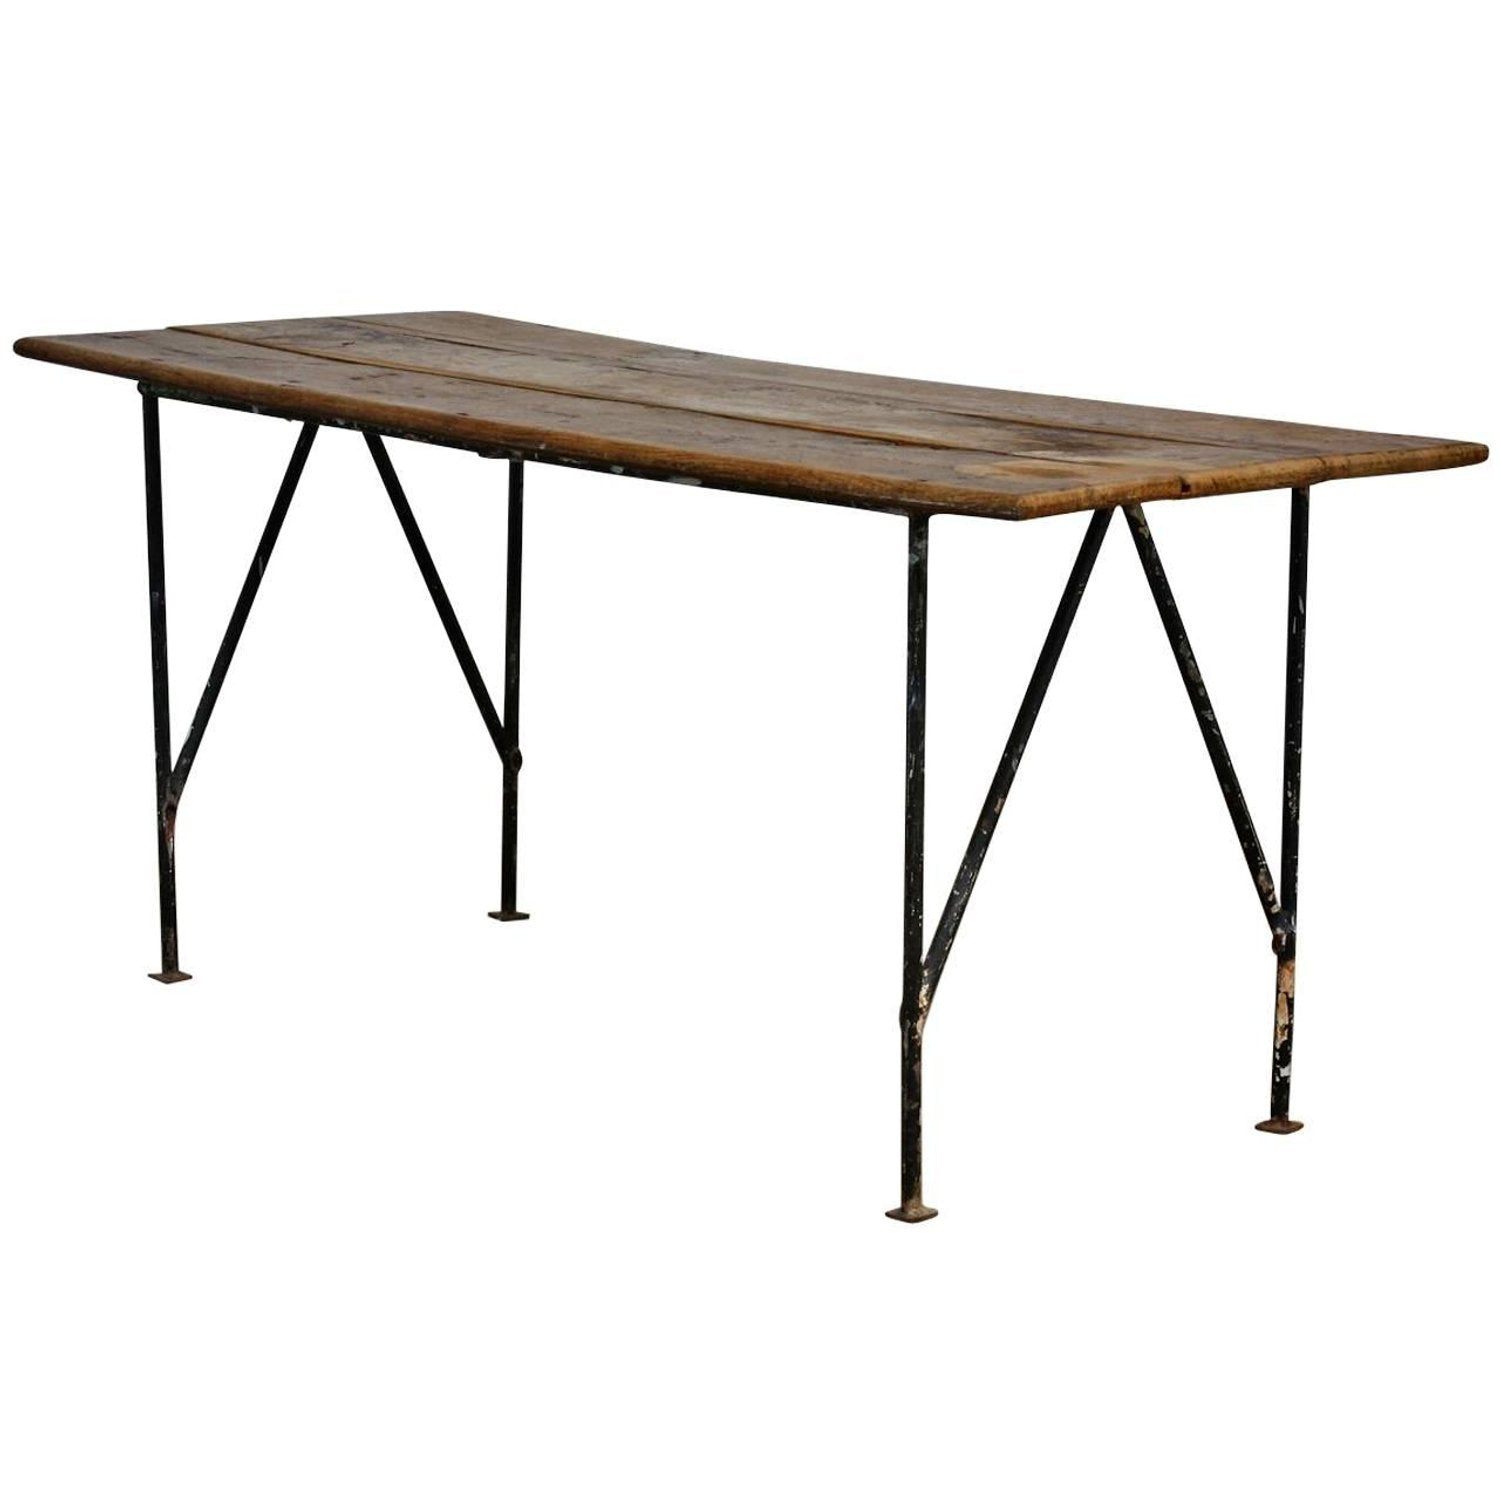 metal base dining table. Country French Farmhouse Dining Table With Metal Base U